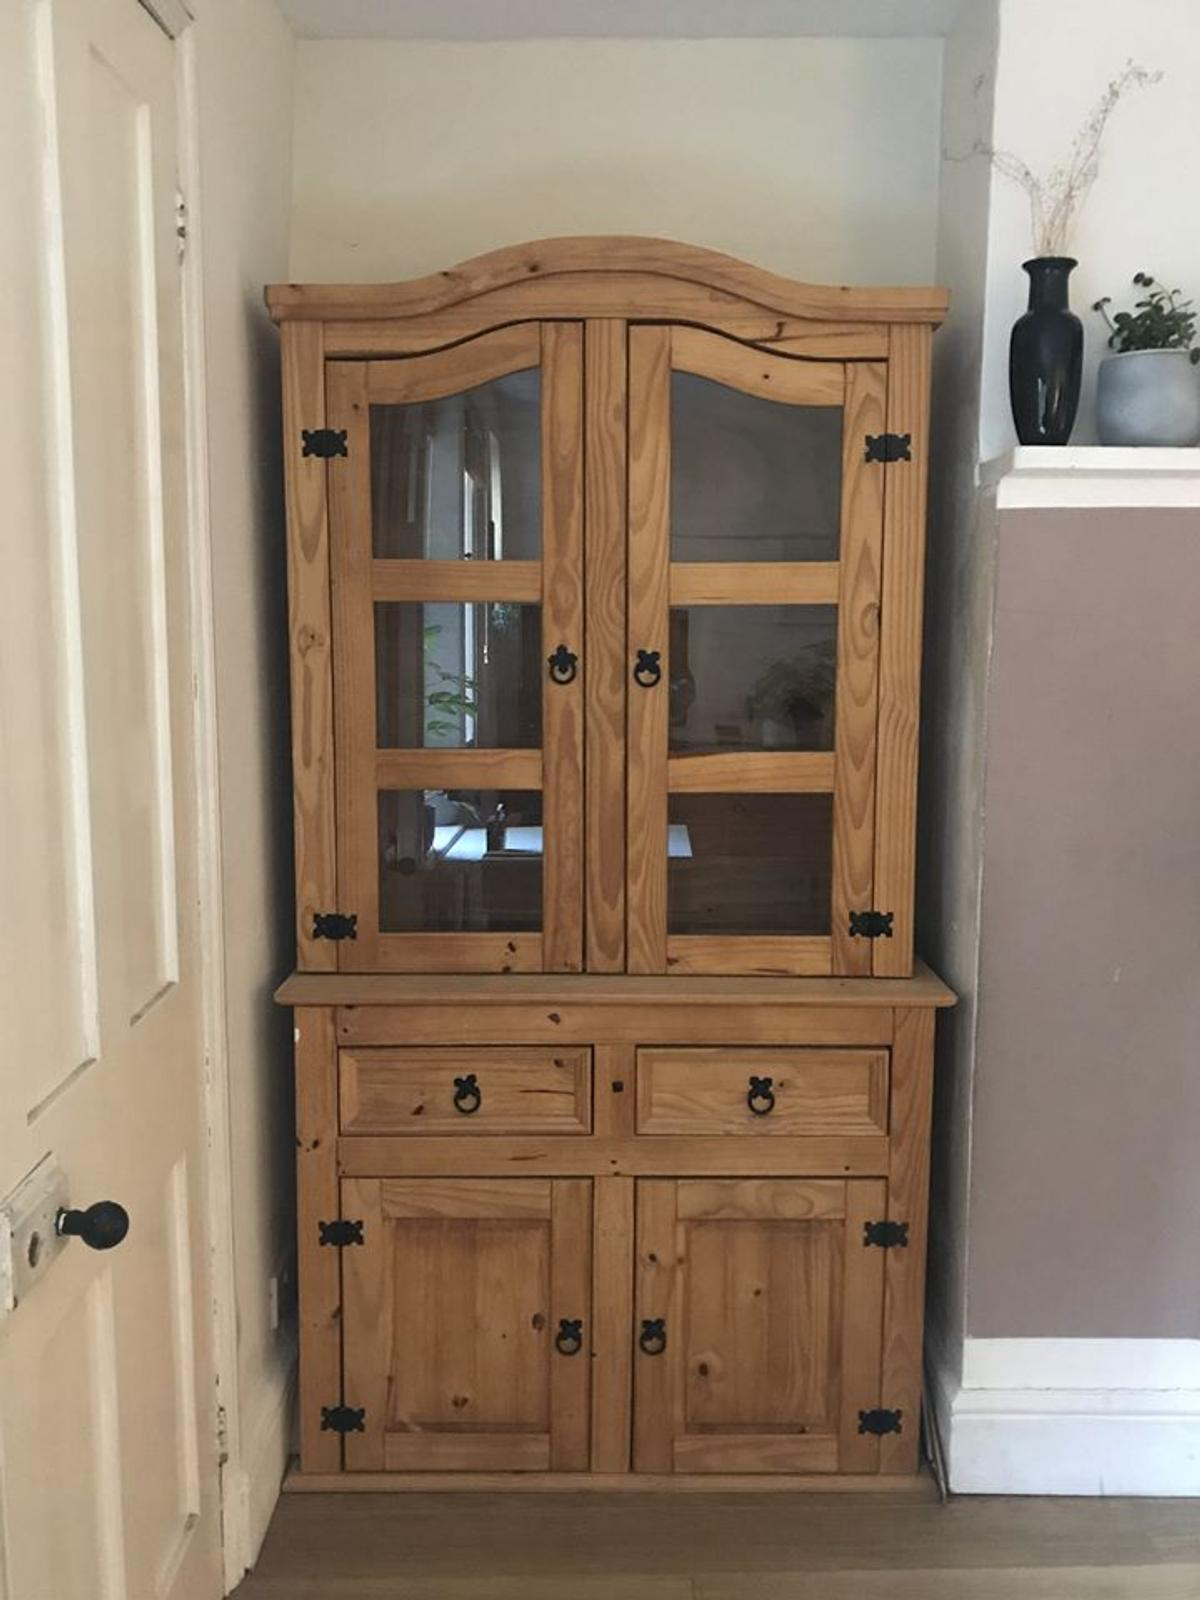 2 Solid Pinewood Dressers in very good condition.  The top display unit can be separated from the lower cupboard unit which will make it easier for transporting.  Measurements: 1060mm width 1980mm height 470mm depth lower unit 335mm depth upper unit  For collection only.